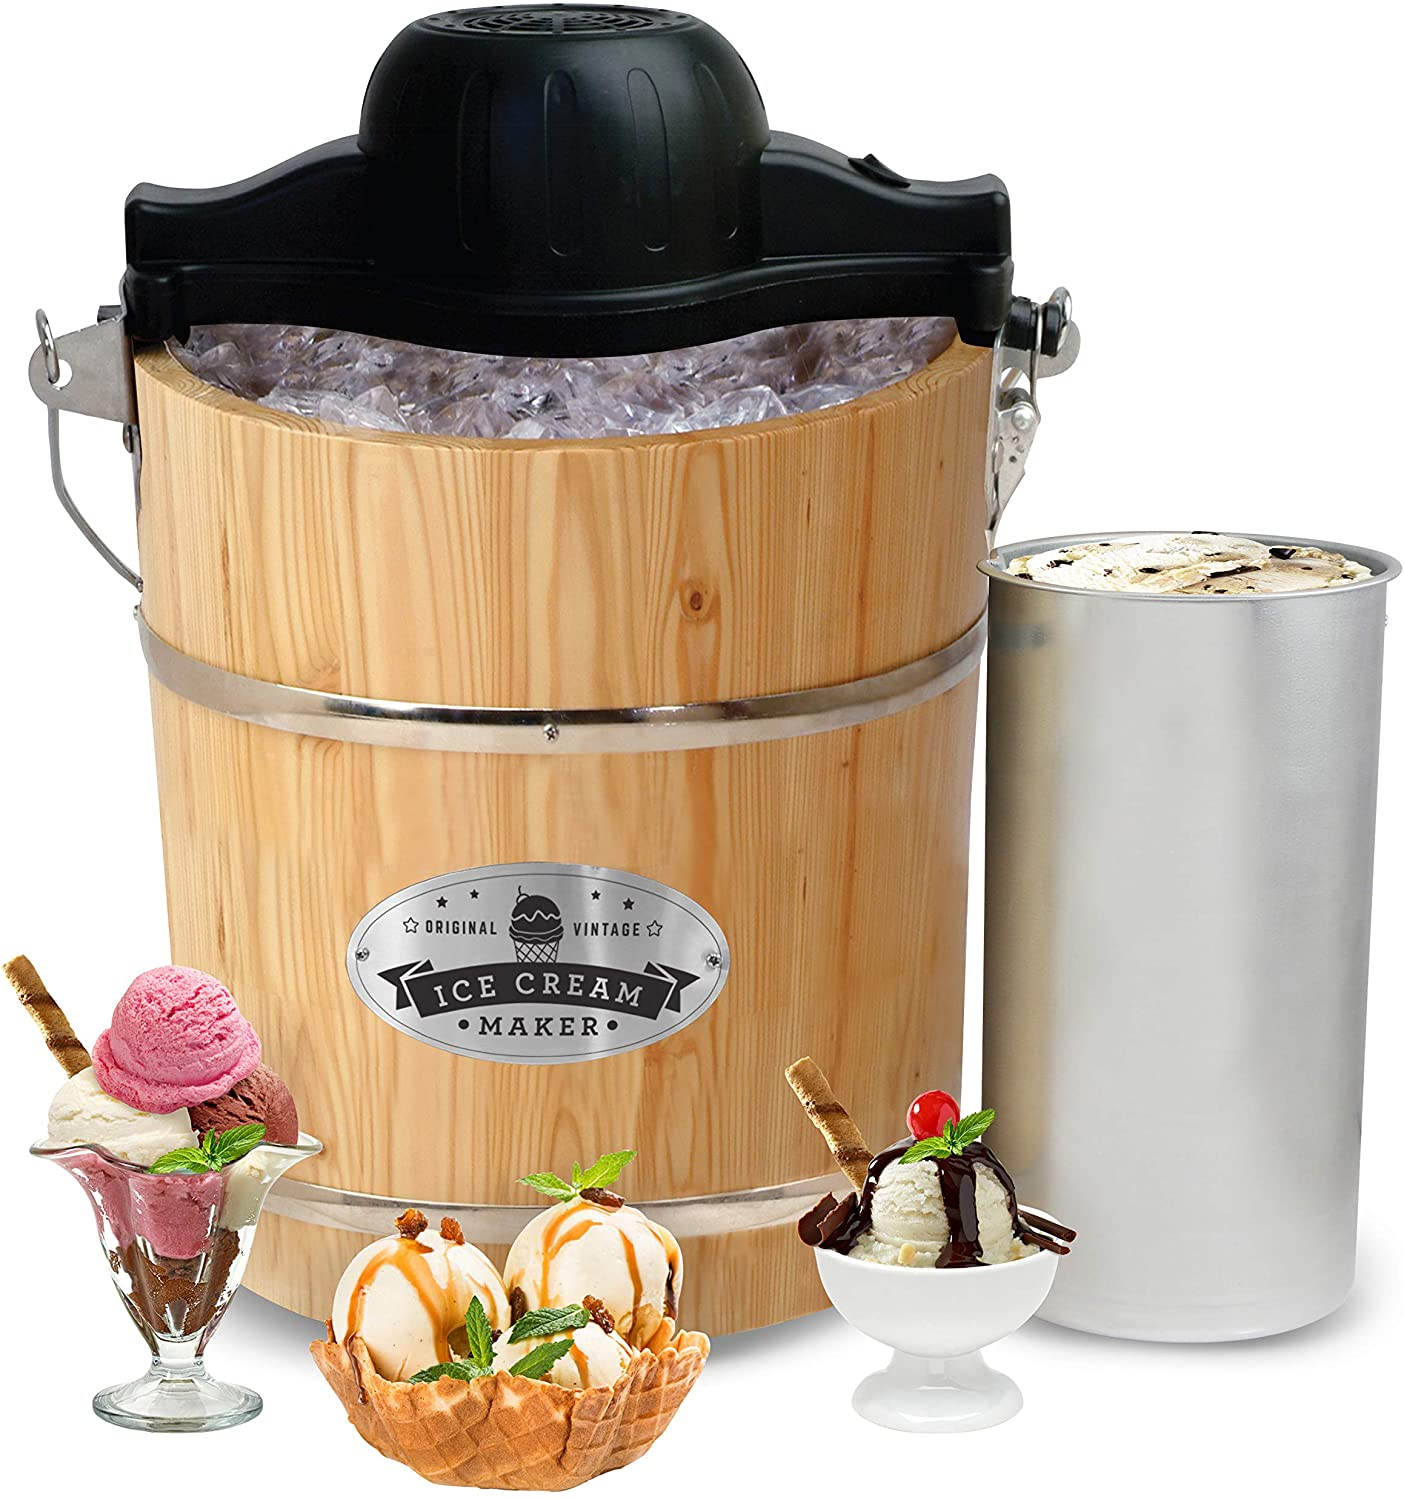 Maxi-Matic Manual Ice Cream Maker, 4-Quart